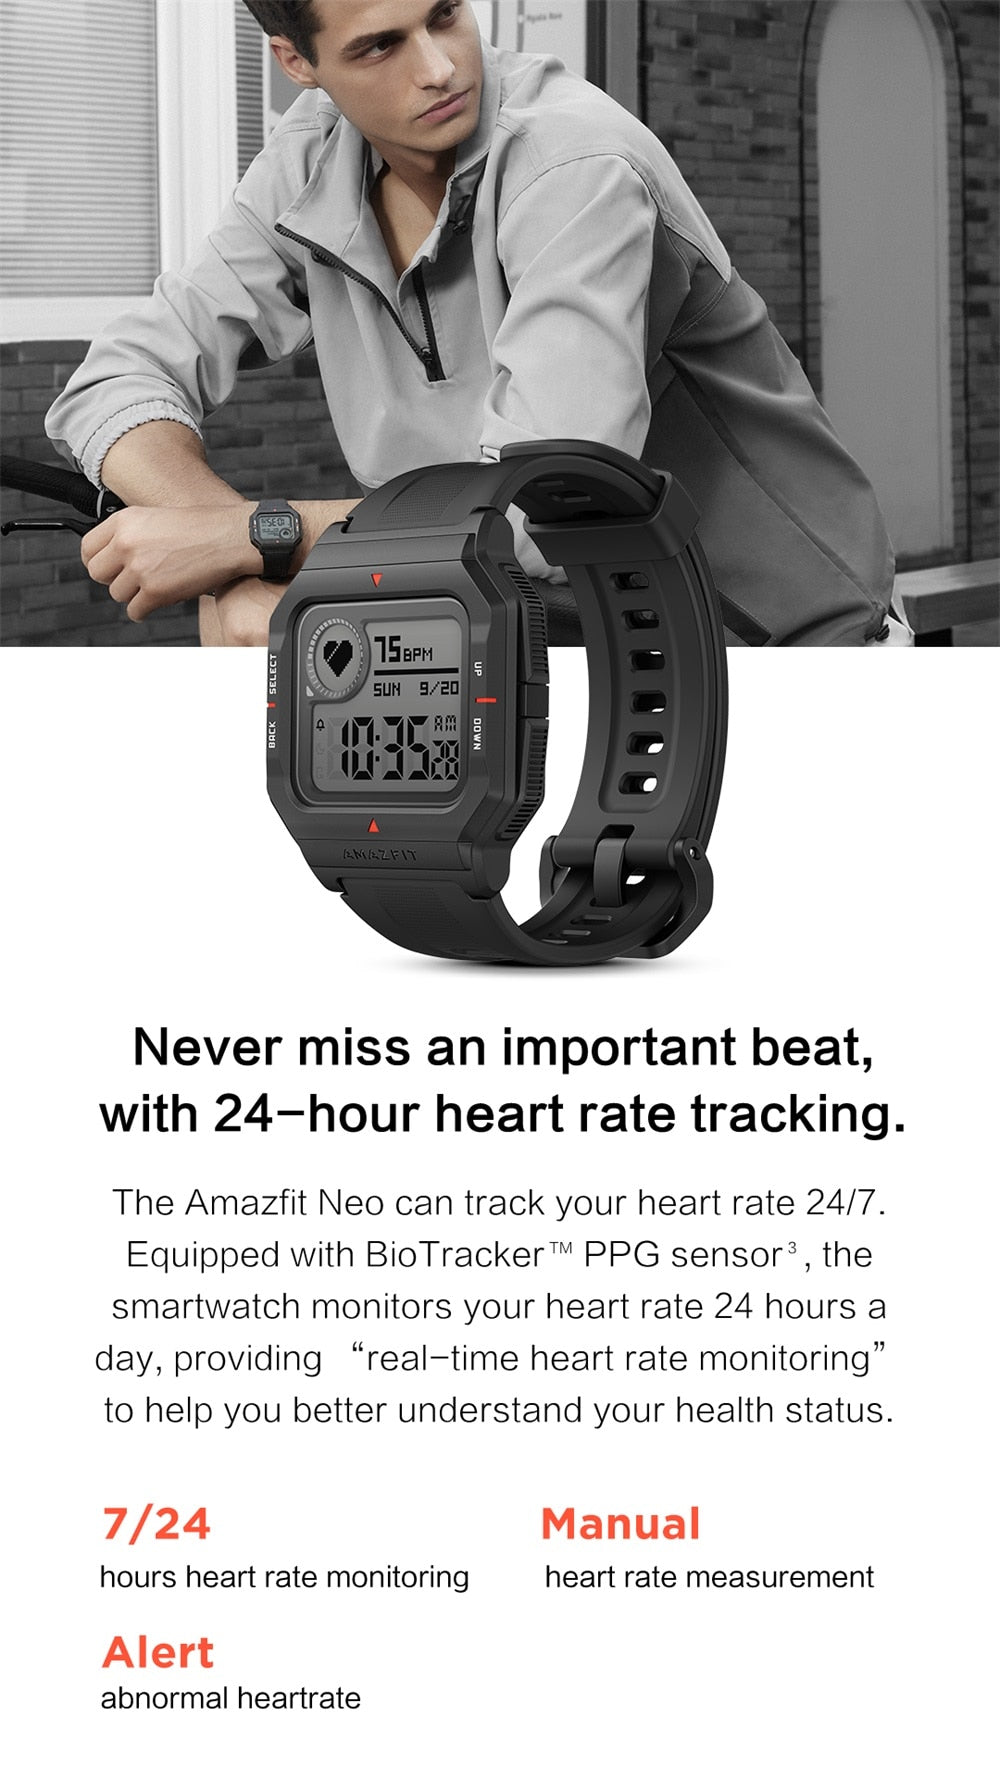 2020 Amazfit Neo Smart Watch Bluetooth Smartwatch 5ATM Heart Rate Tracking 28Days Battery Life For Android IOS Phone In Stock